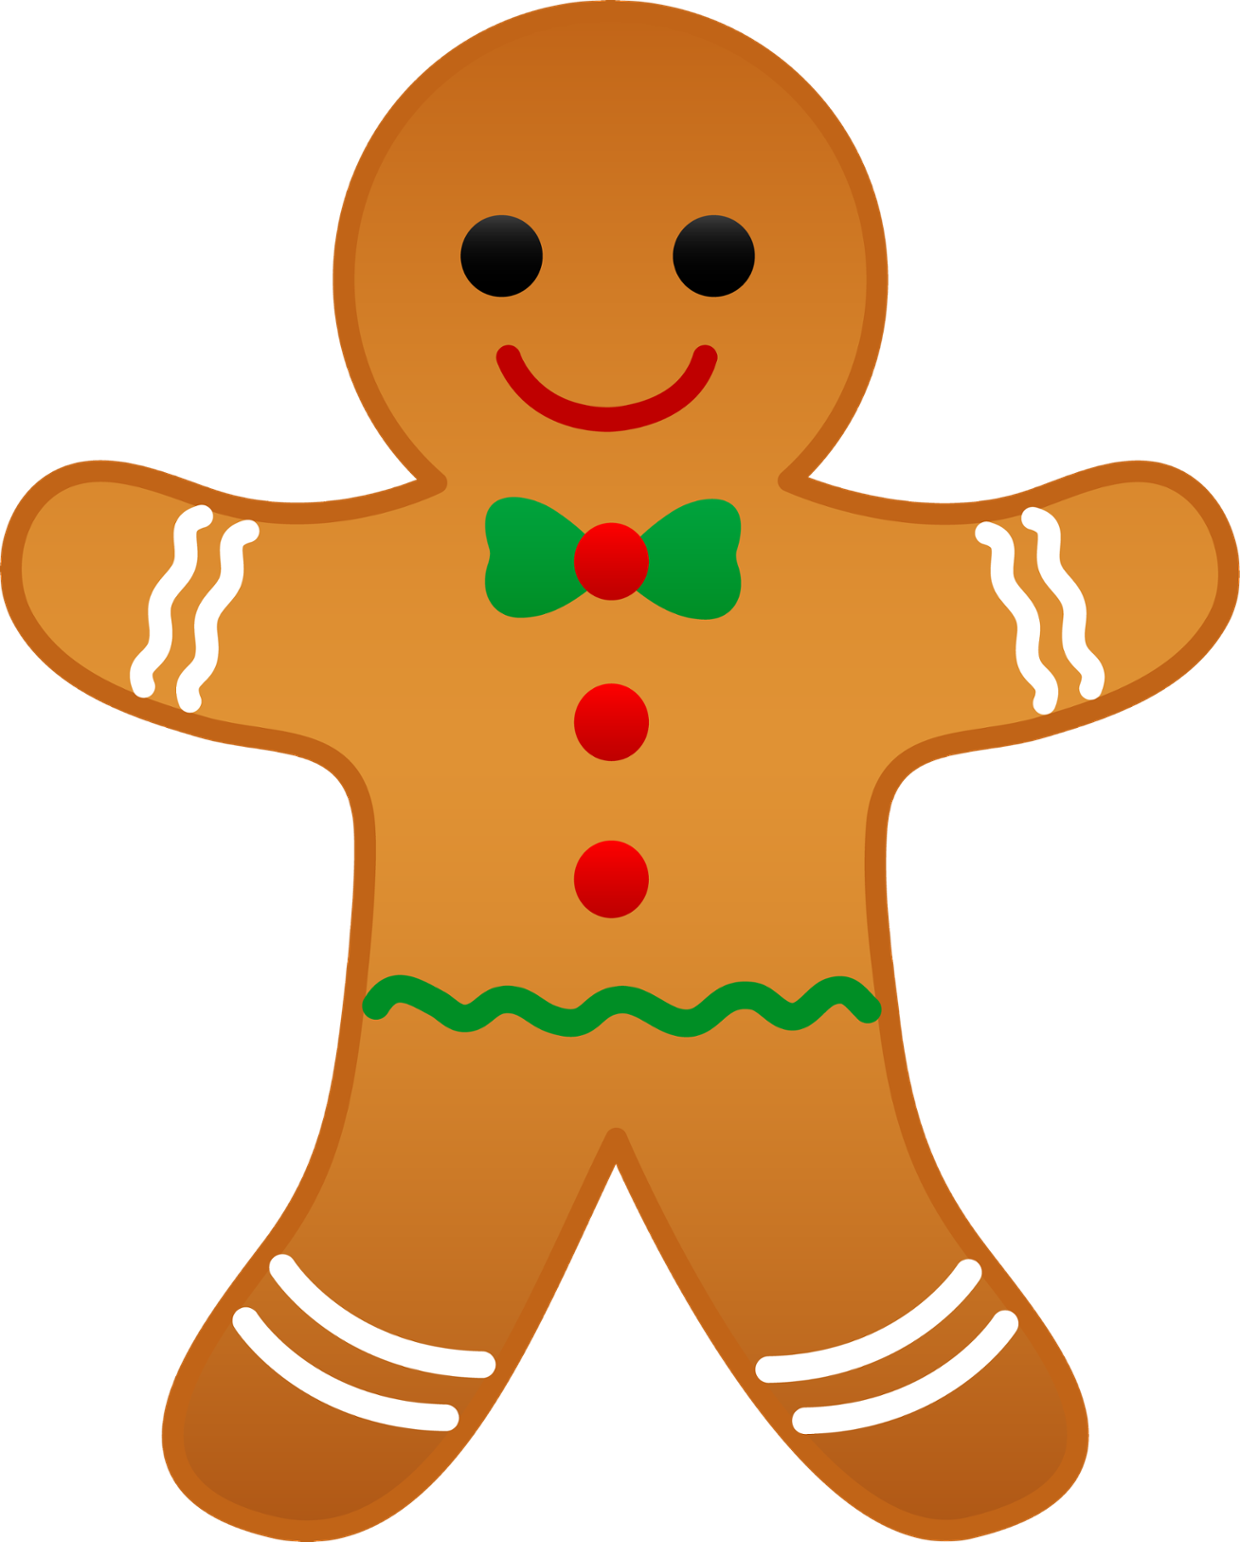 Sweet Gingerbread Man Gingerbread House Starfall Ginger By Kelly Lusak Christmas Gingerbread Men Christmas Characters Christmas Clipart Free